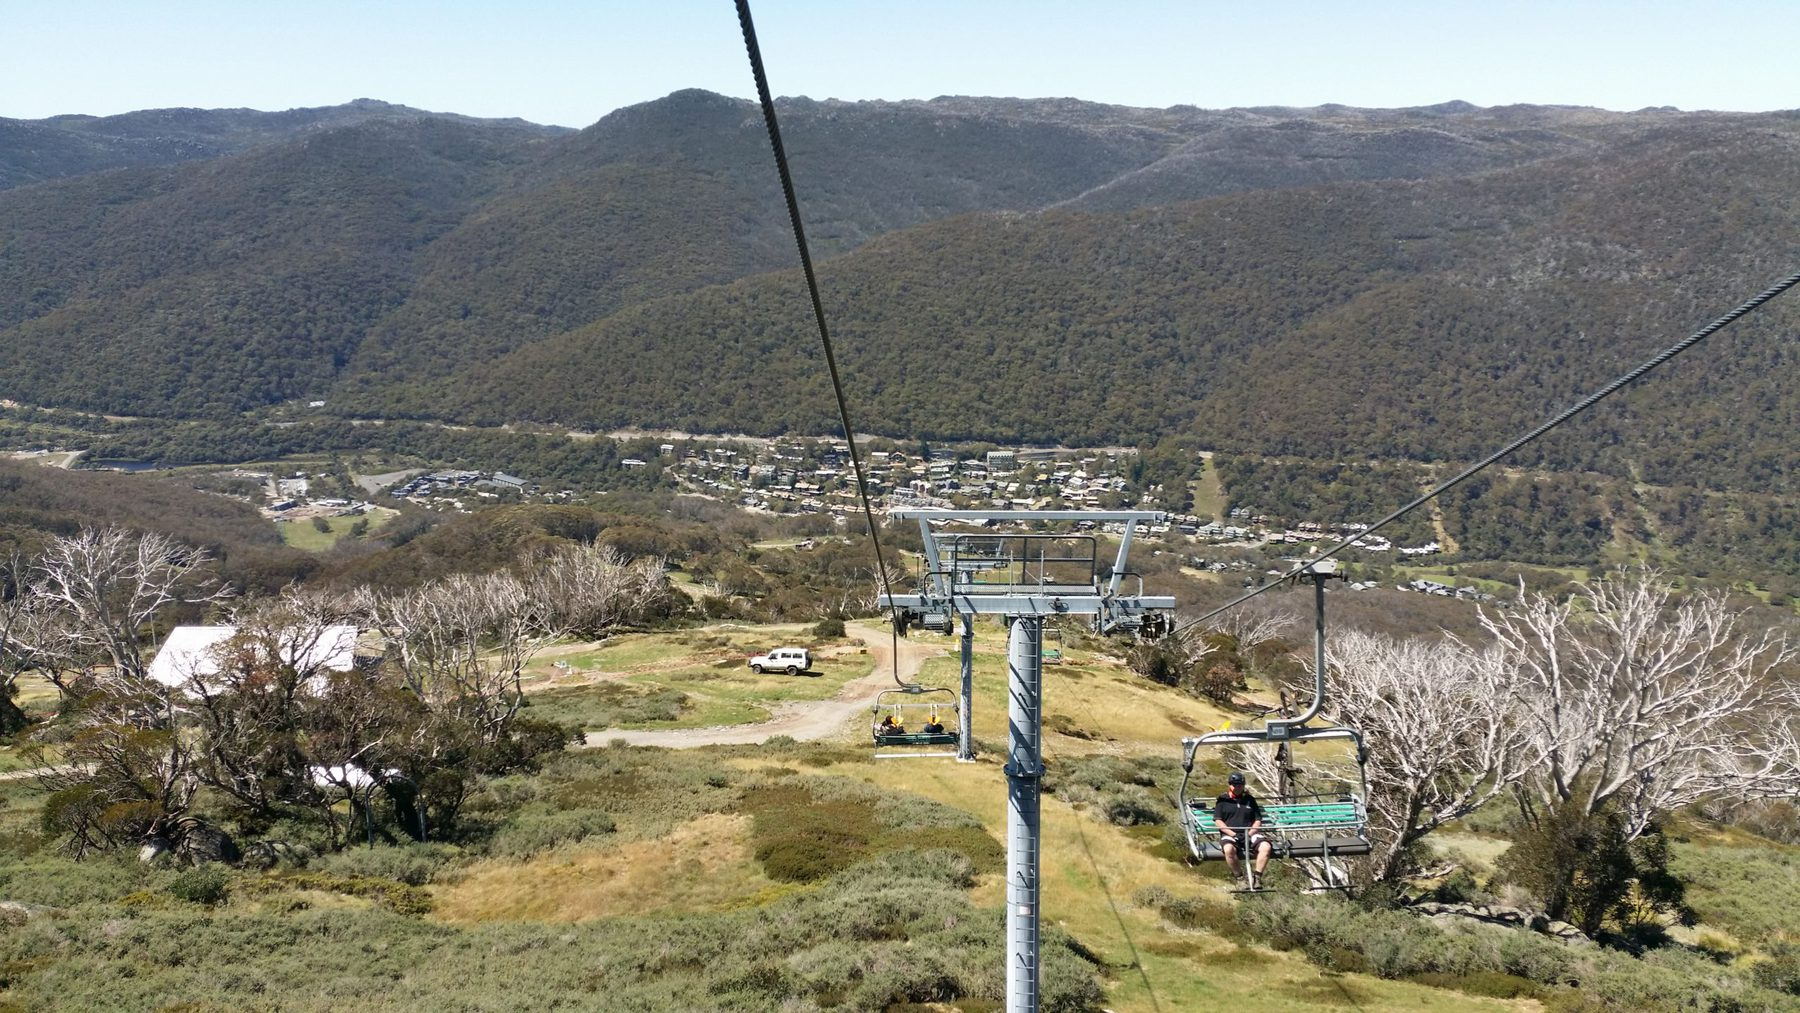 thredbo village with mountains behind as seen from the chairlift